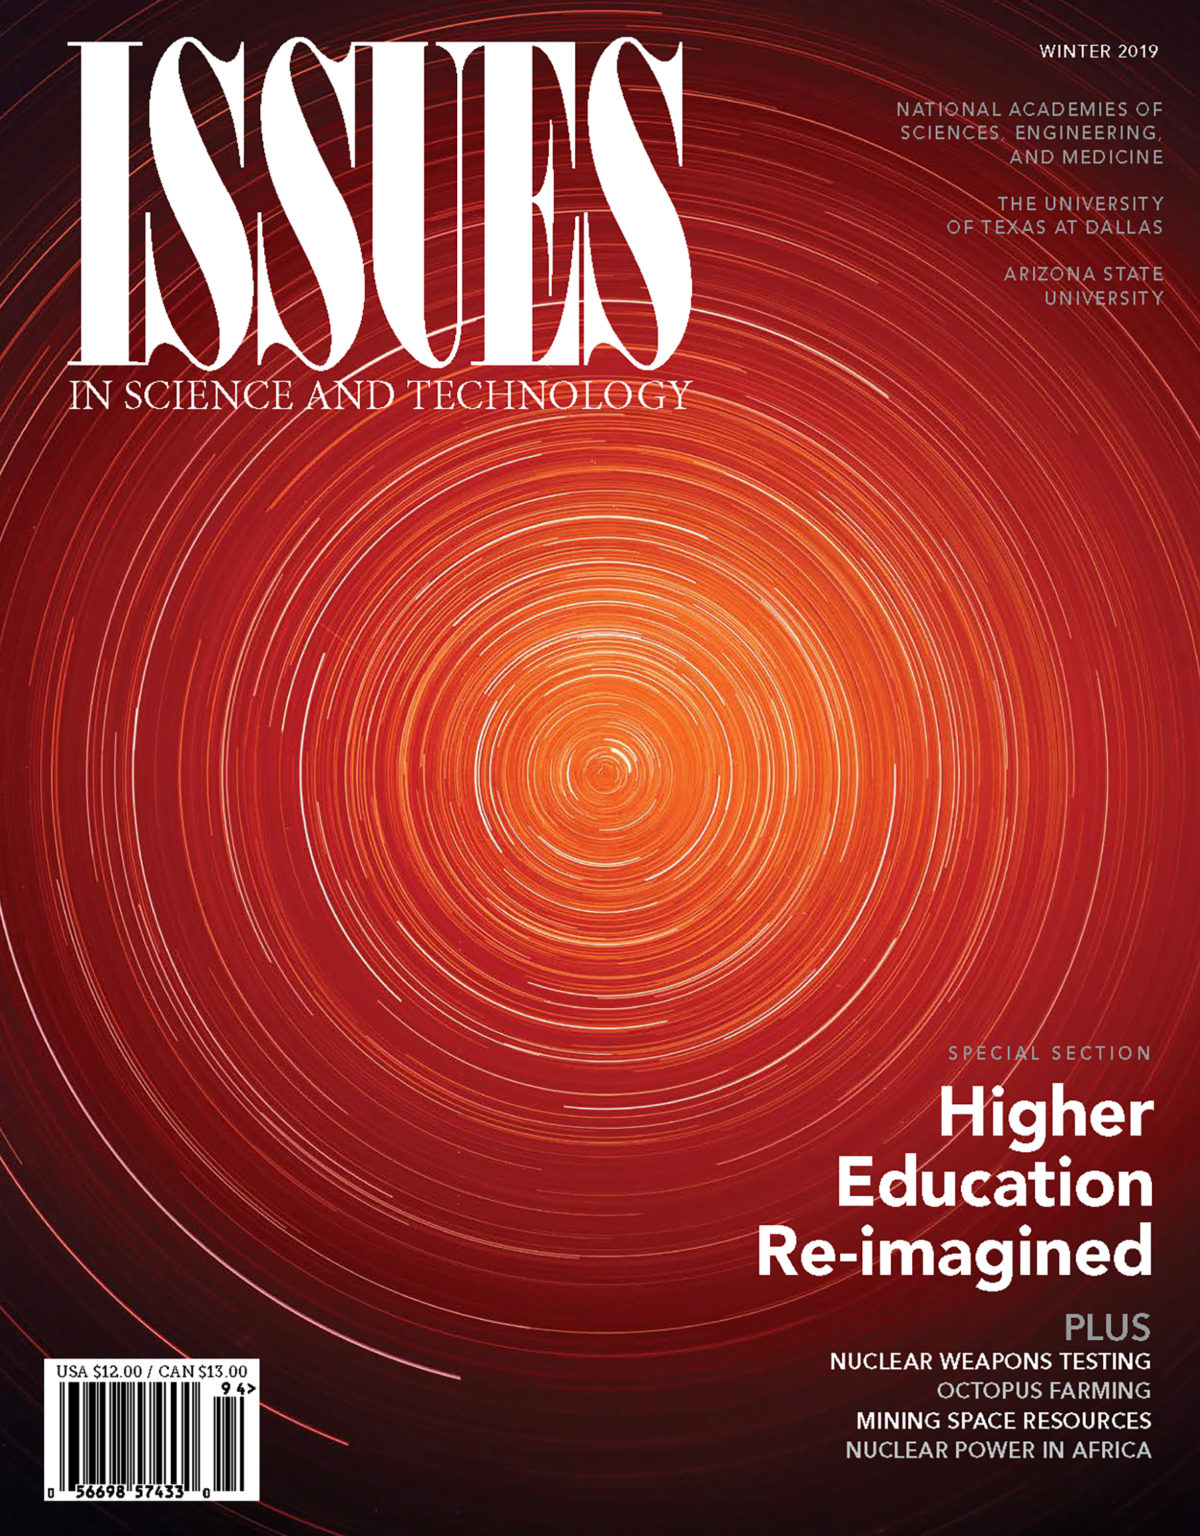 Magazine cover displays a spiral of star trails